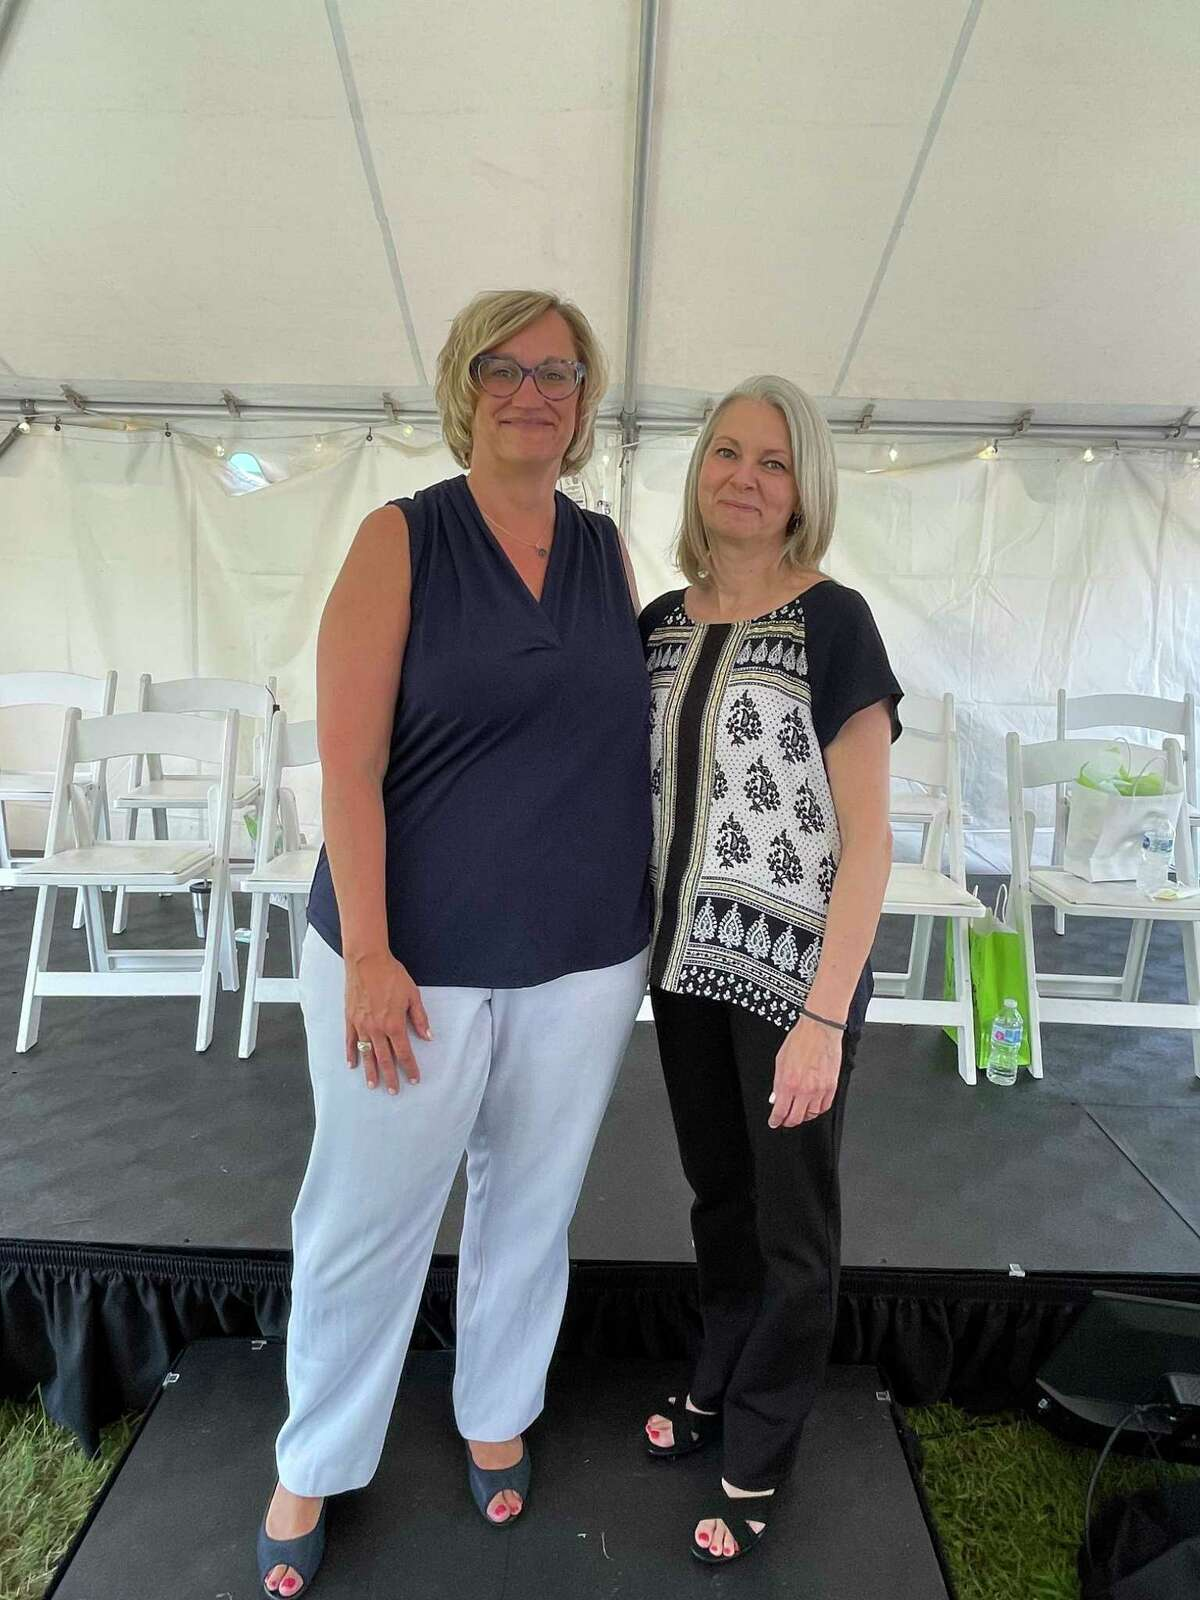 Alyssa Rotman, right, was recently named Employee of the Year at Gaylord Specialty Healthcare in Wallingford. At left isPresident and CEO Sonja LaBarbera.